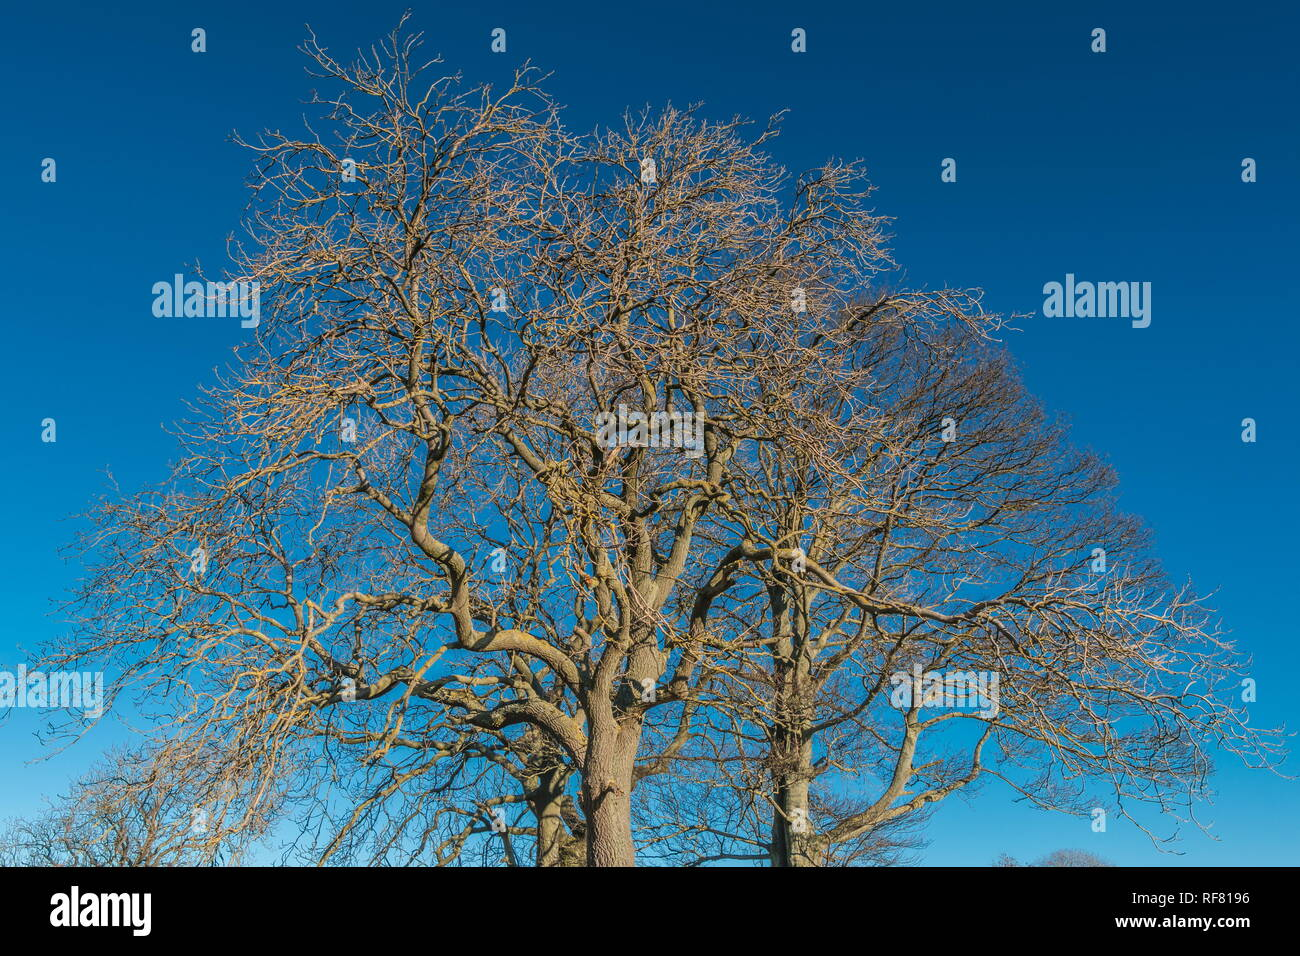 Silhouettes of two bare Ash trees and one bare Sycamore tree against a deep blue clear sky in strong winter sunshine Stock Photo